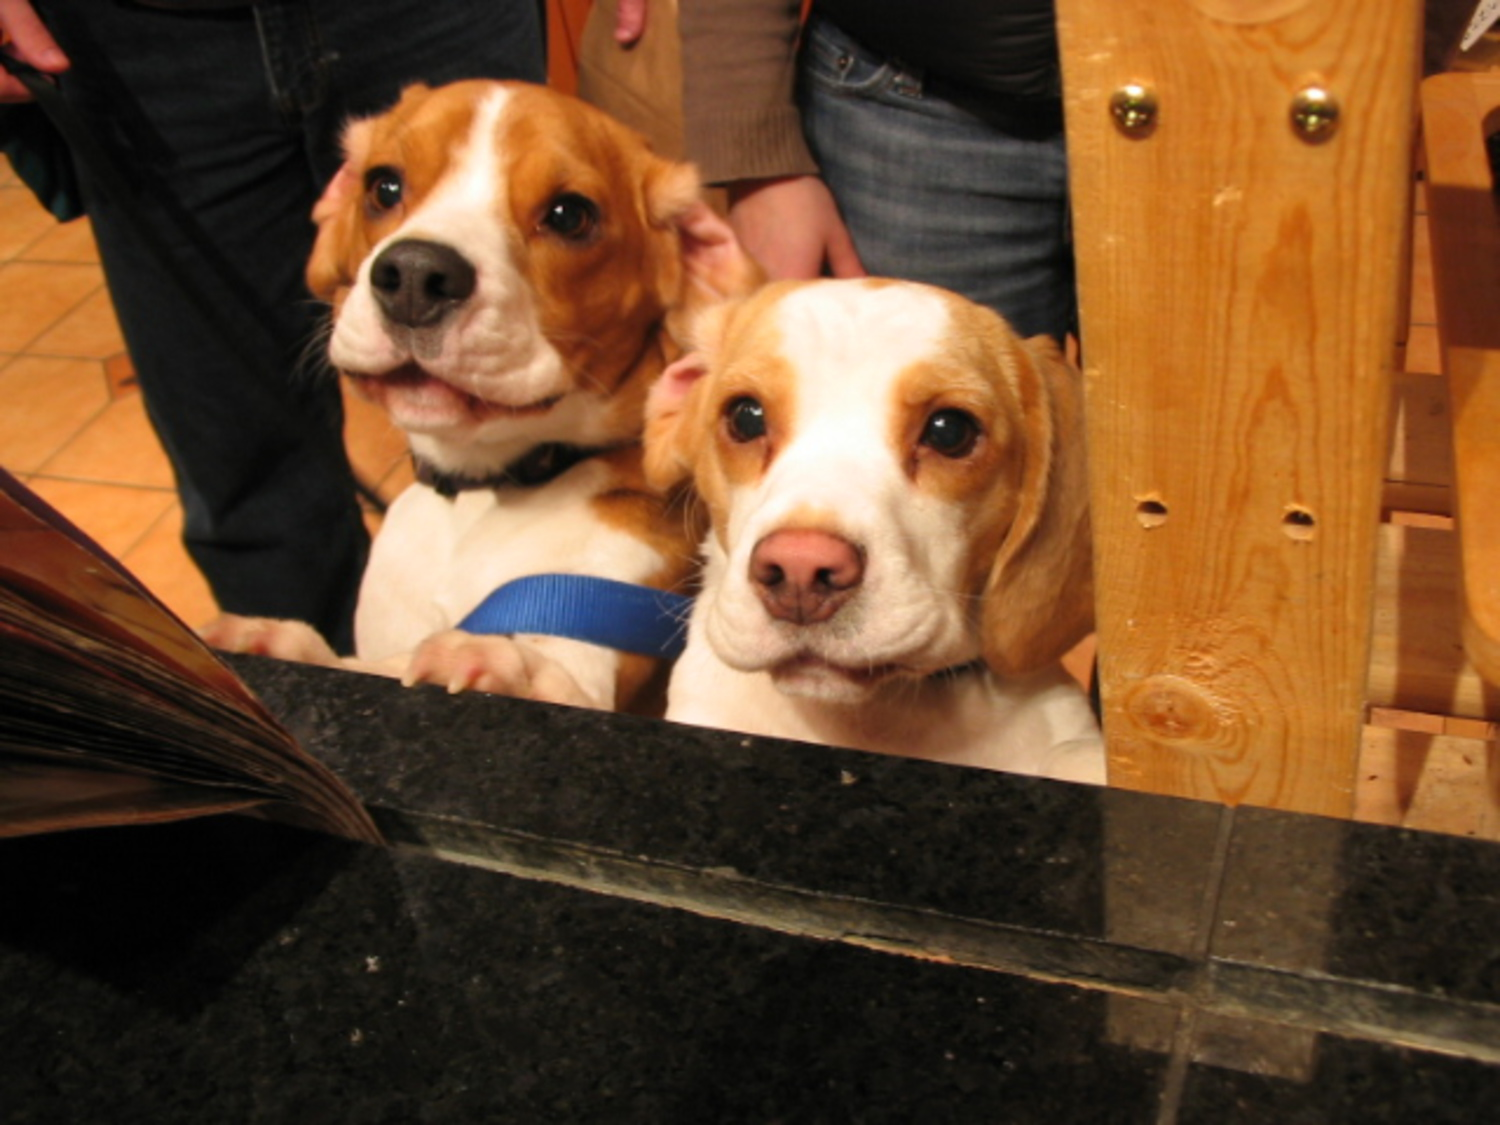 Beagle puppies at the counter | From January. These two puppies came for Sunday brunch at the Three Dog Bakery.